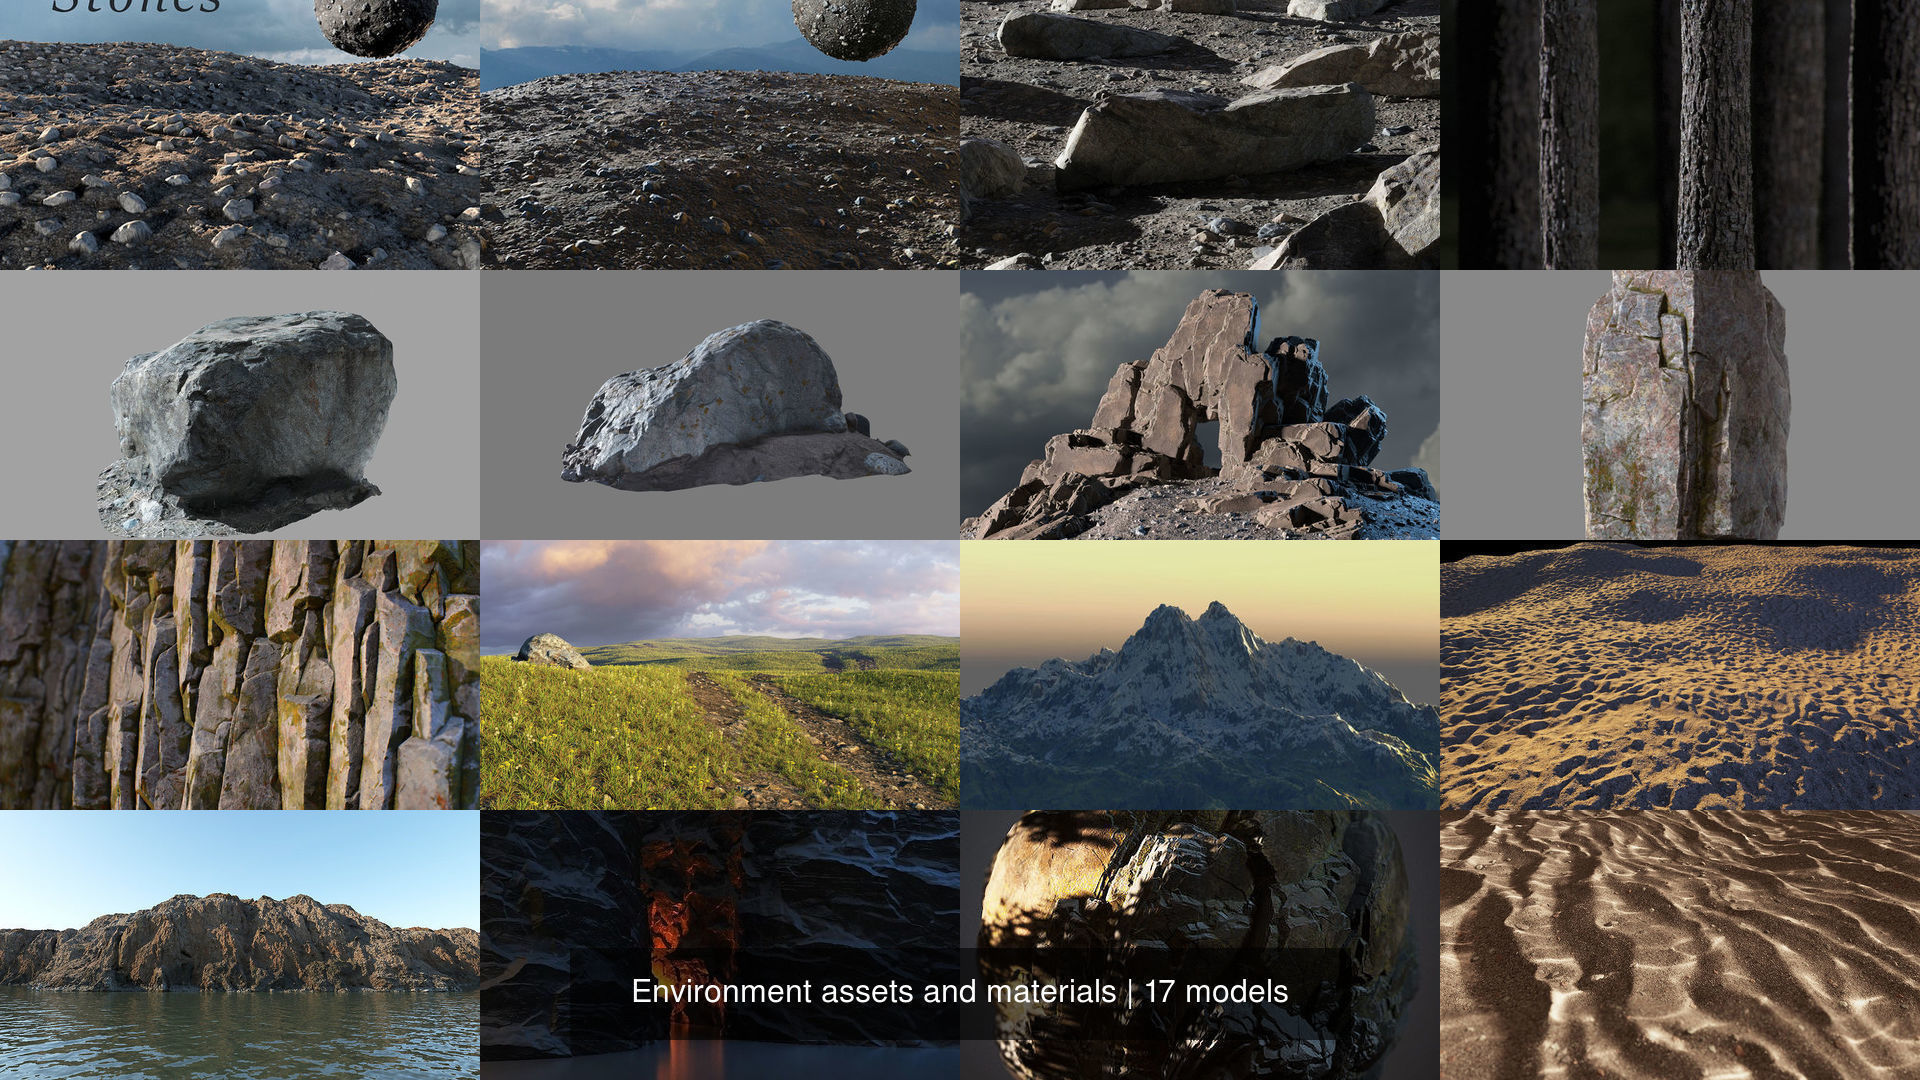 Environment assets and materials